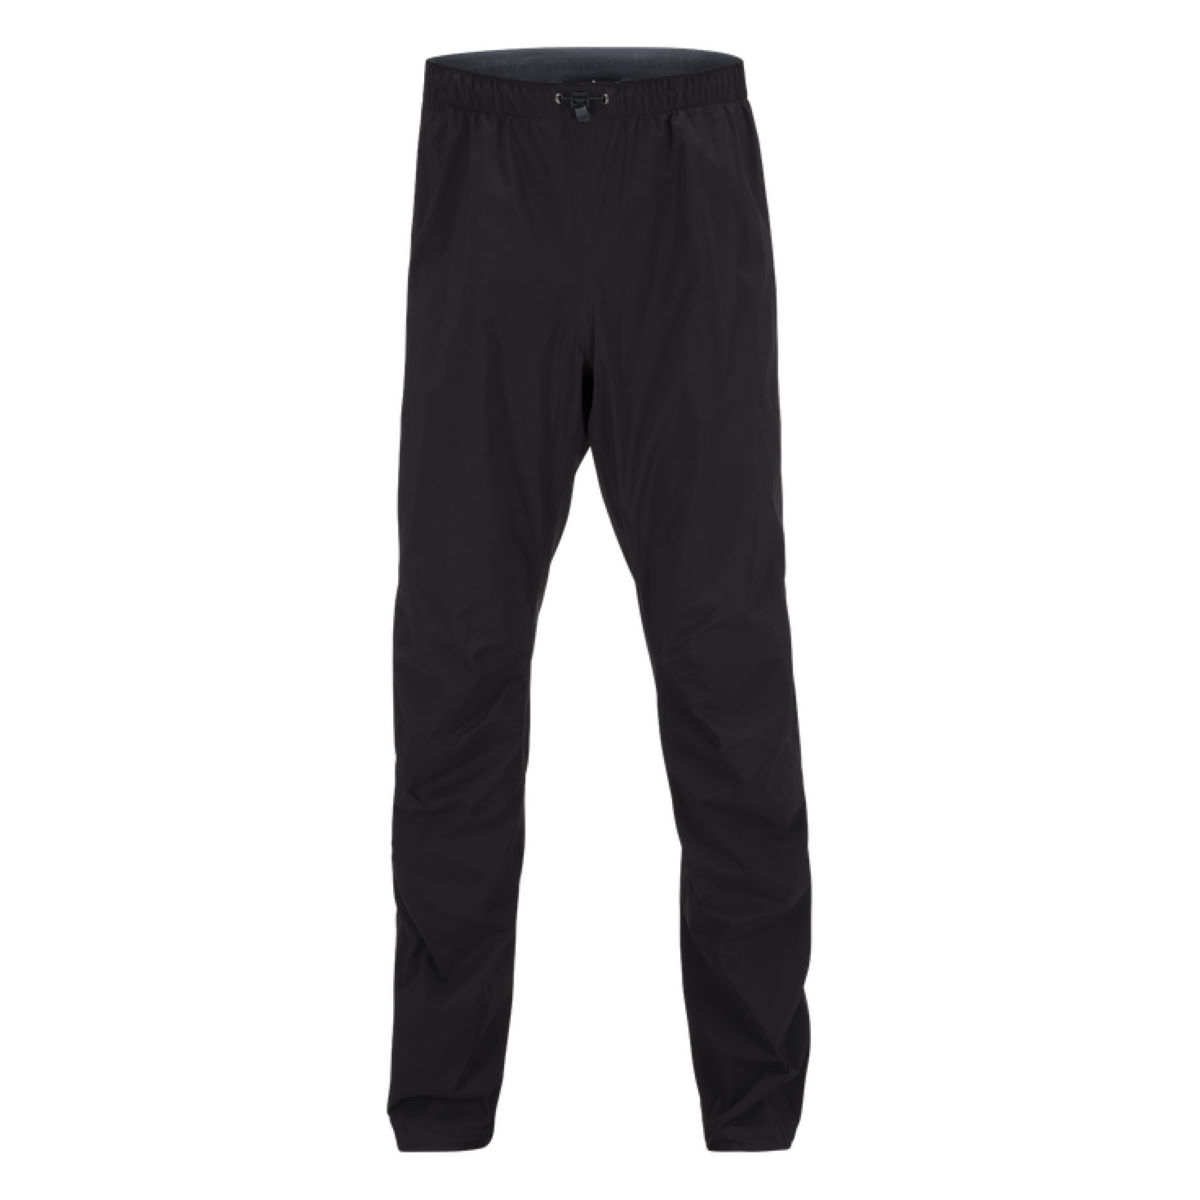 Pantalon Peak Performance Swift - XL Noir Pantalons